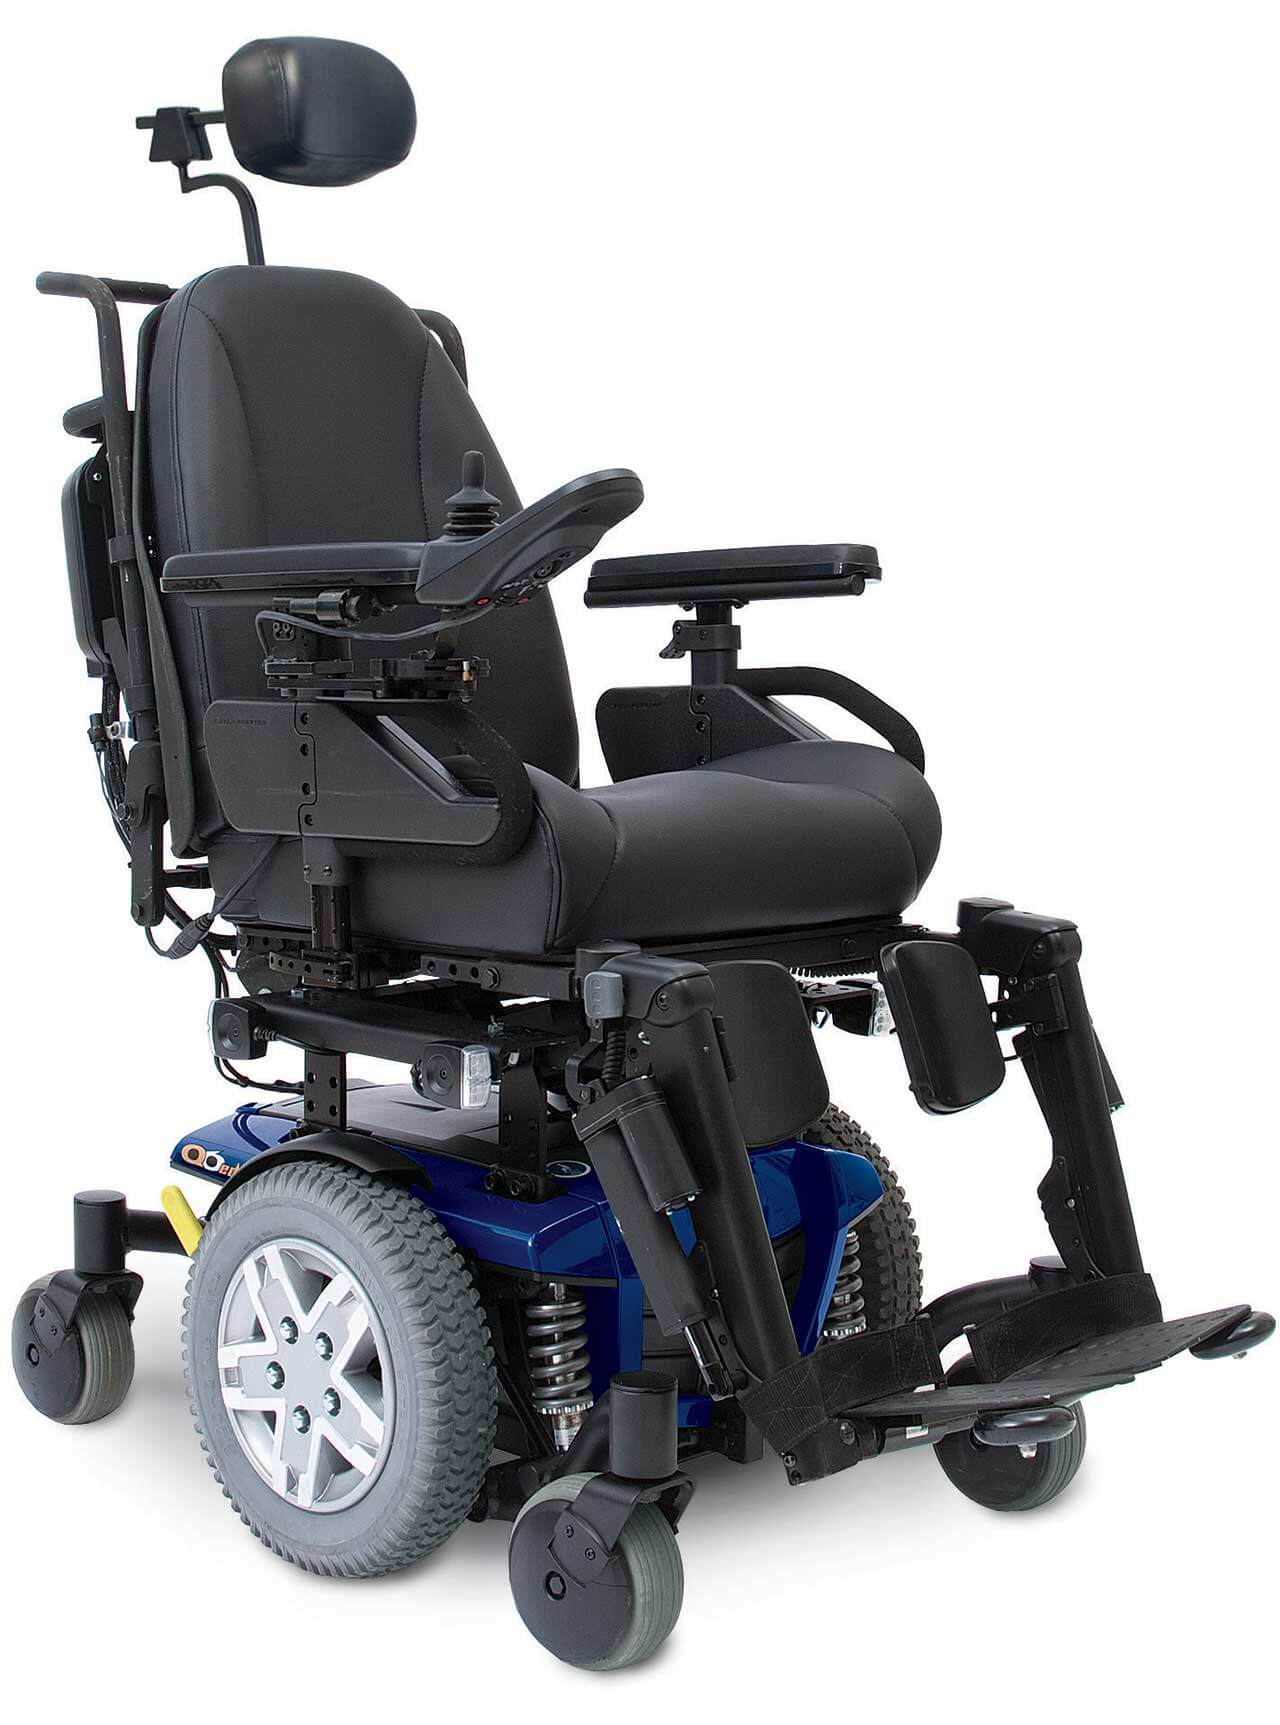 Pride Q6 Edge Powerchair/Electric Wheelchair for hire or sale on standing wheelchair edge, pride edge wheelchair, pride quantum 1420, pride mobility wheelchairs, pride litestream xf, pride quantum 6000z,